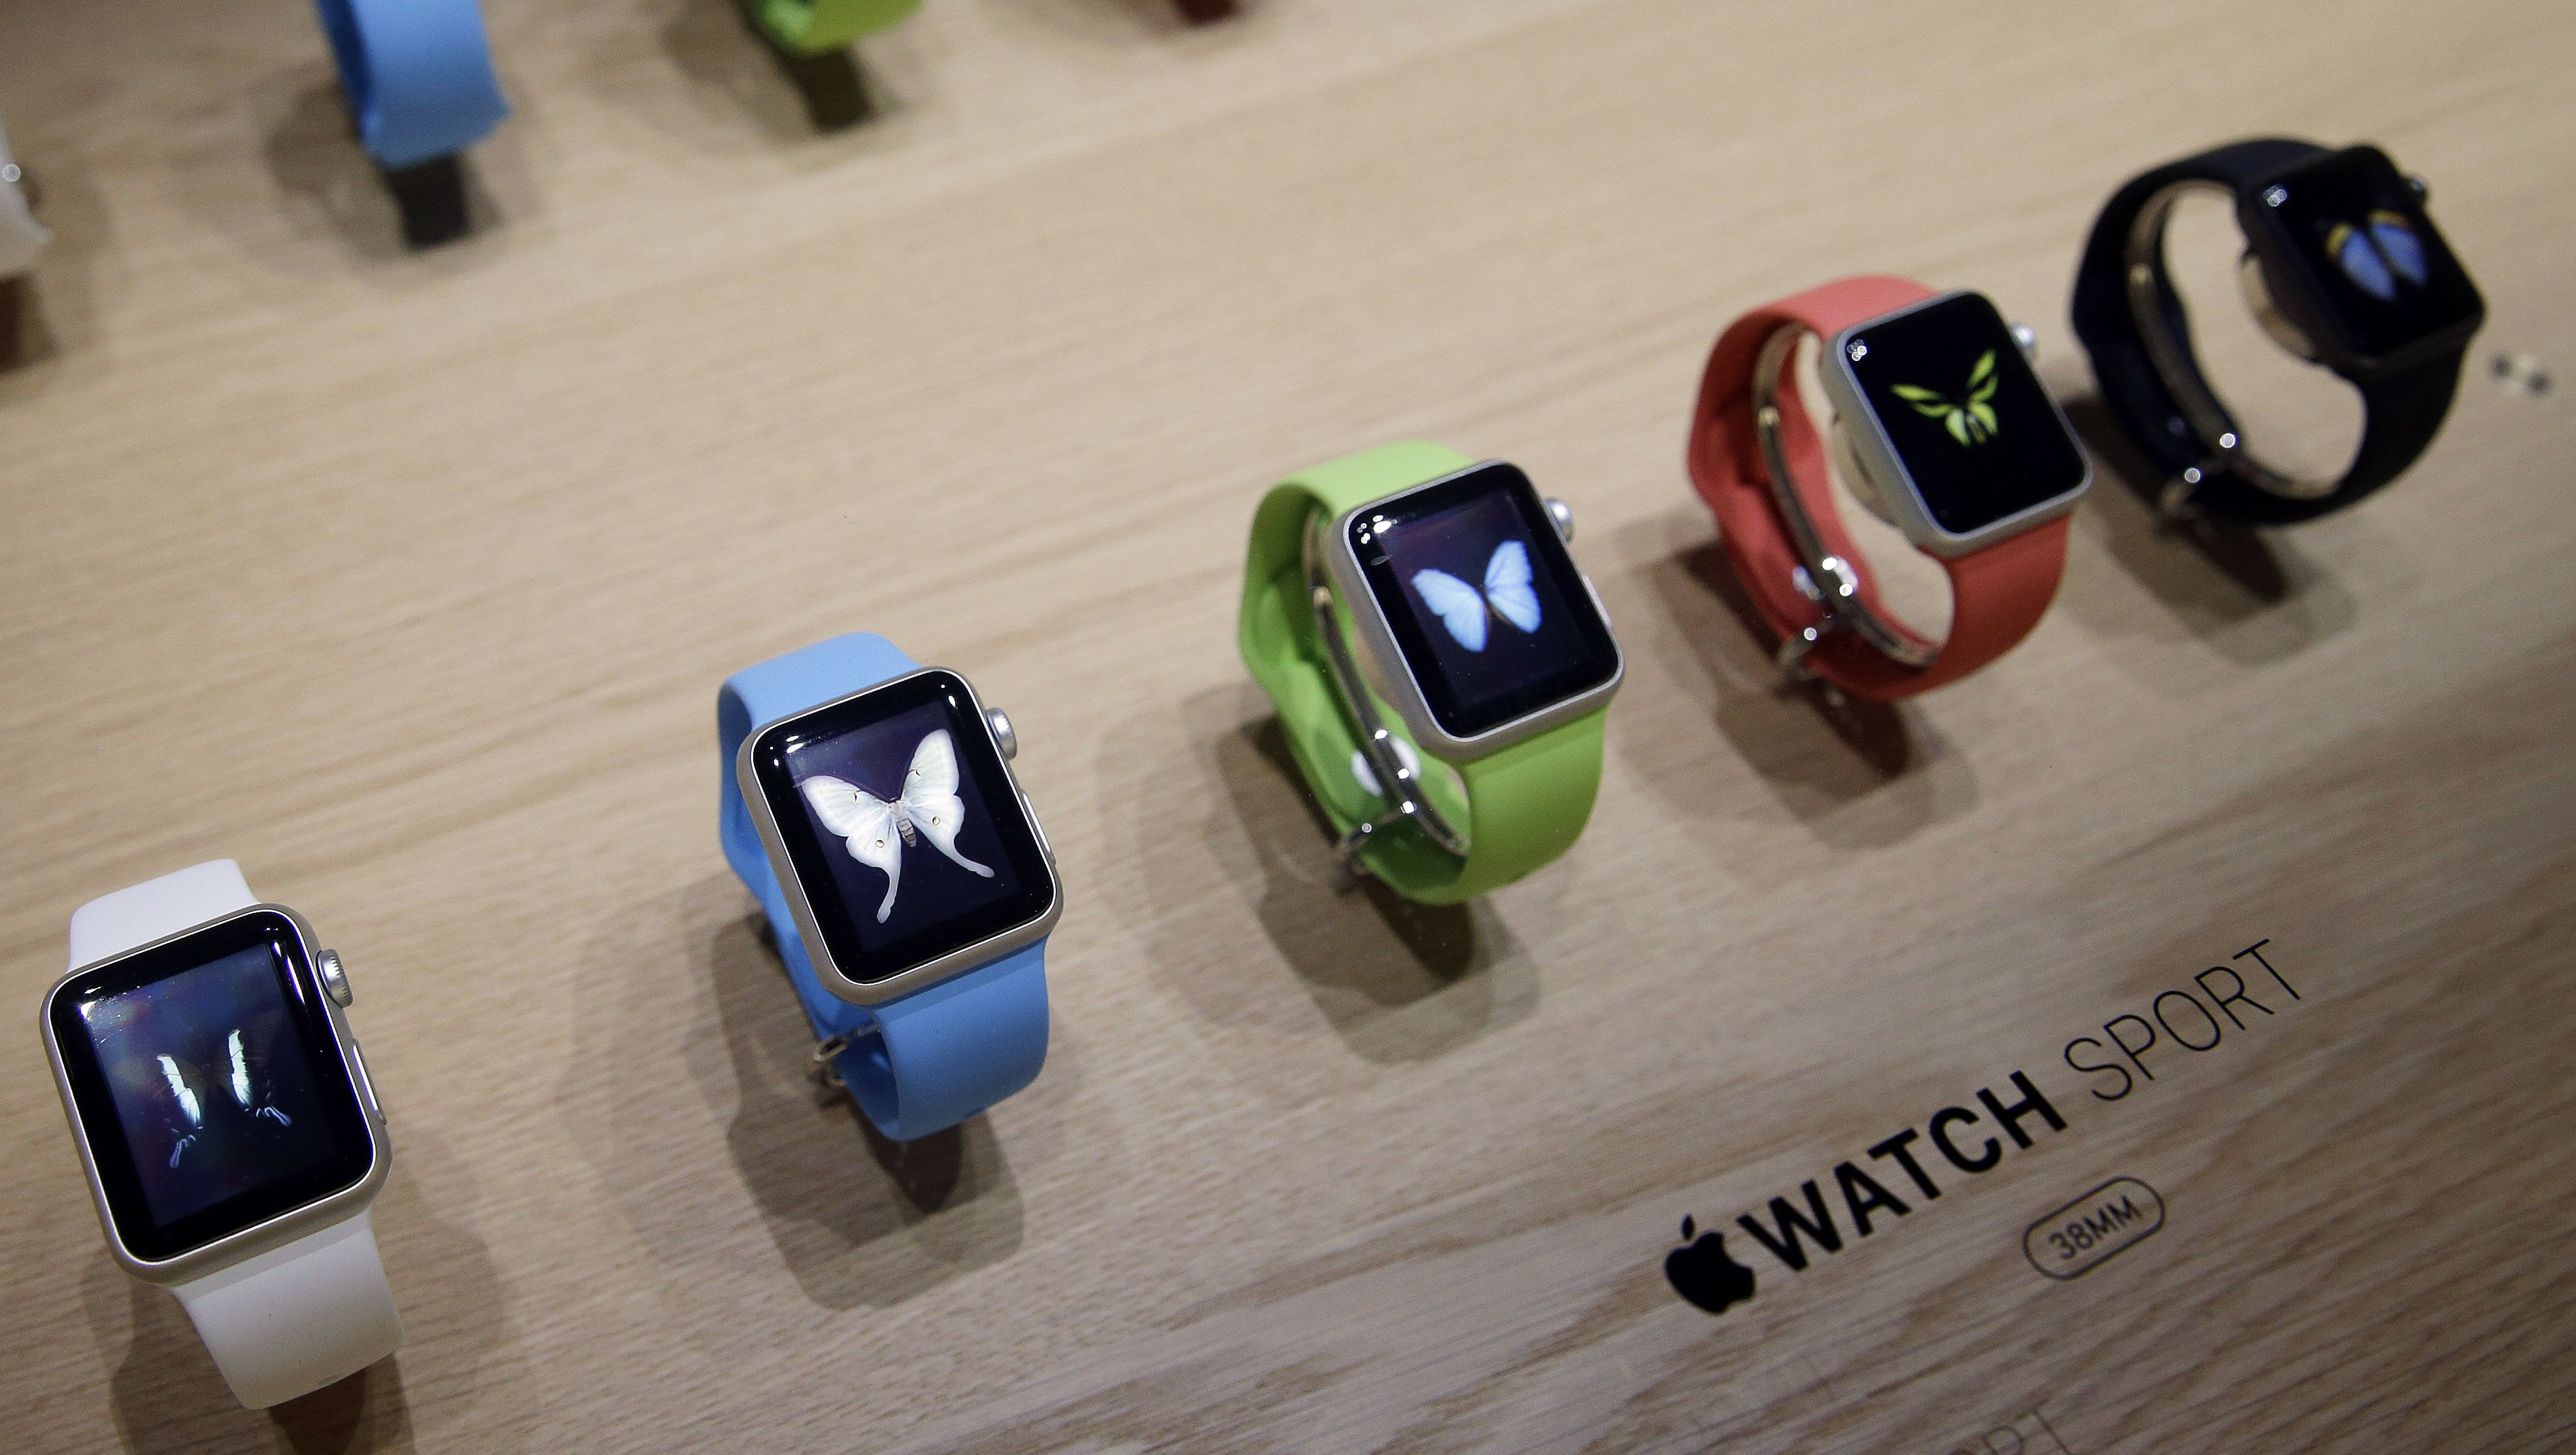 I'm an iOS developer, and there are two main reasons I'm giving up my Apple Watch